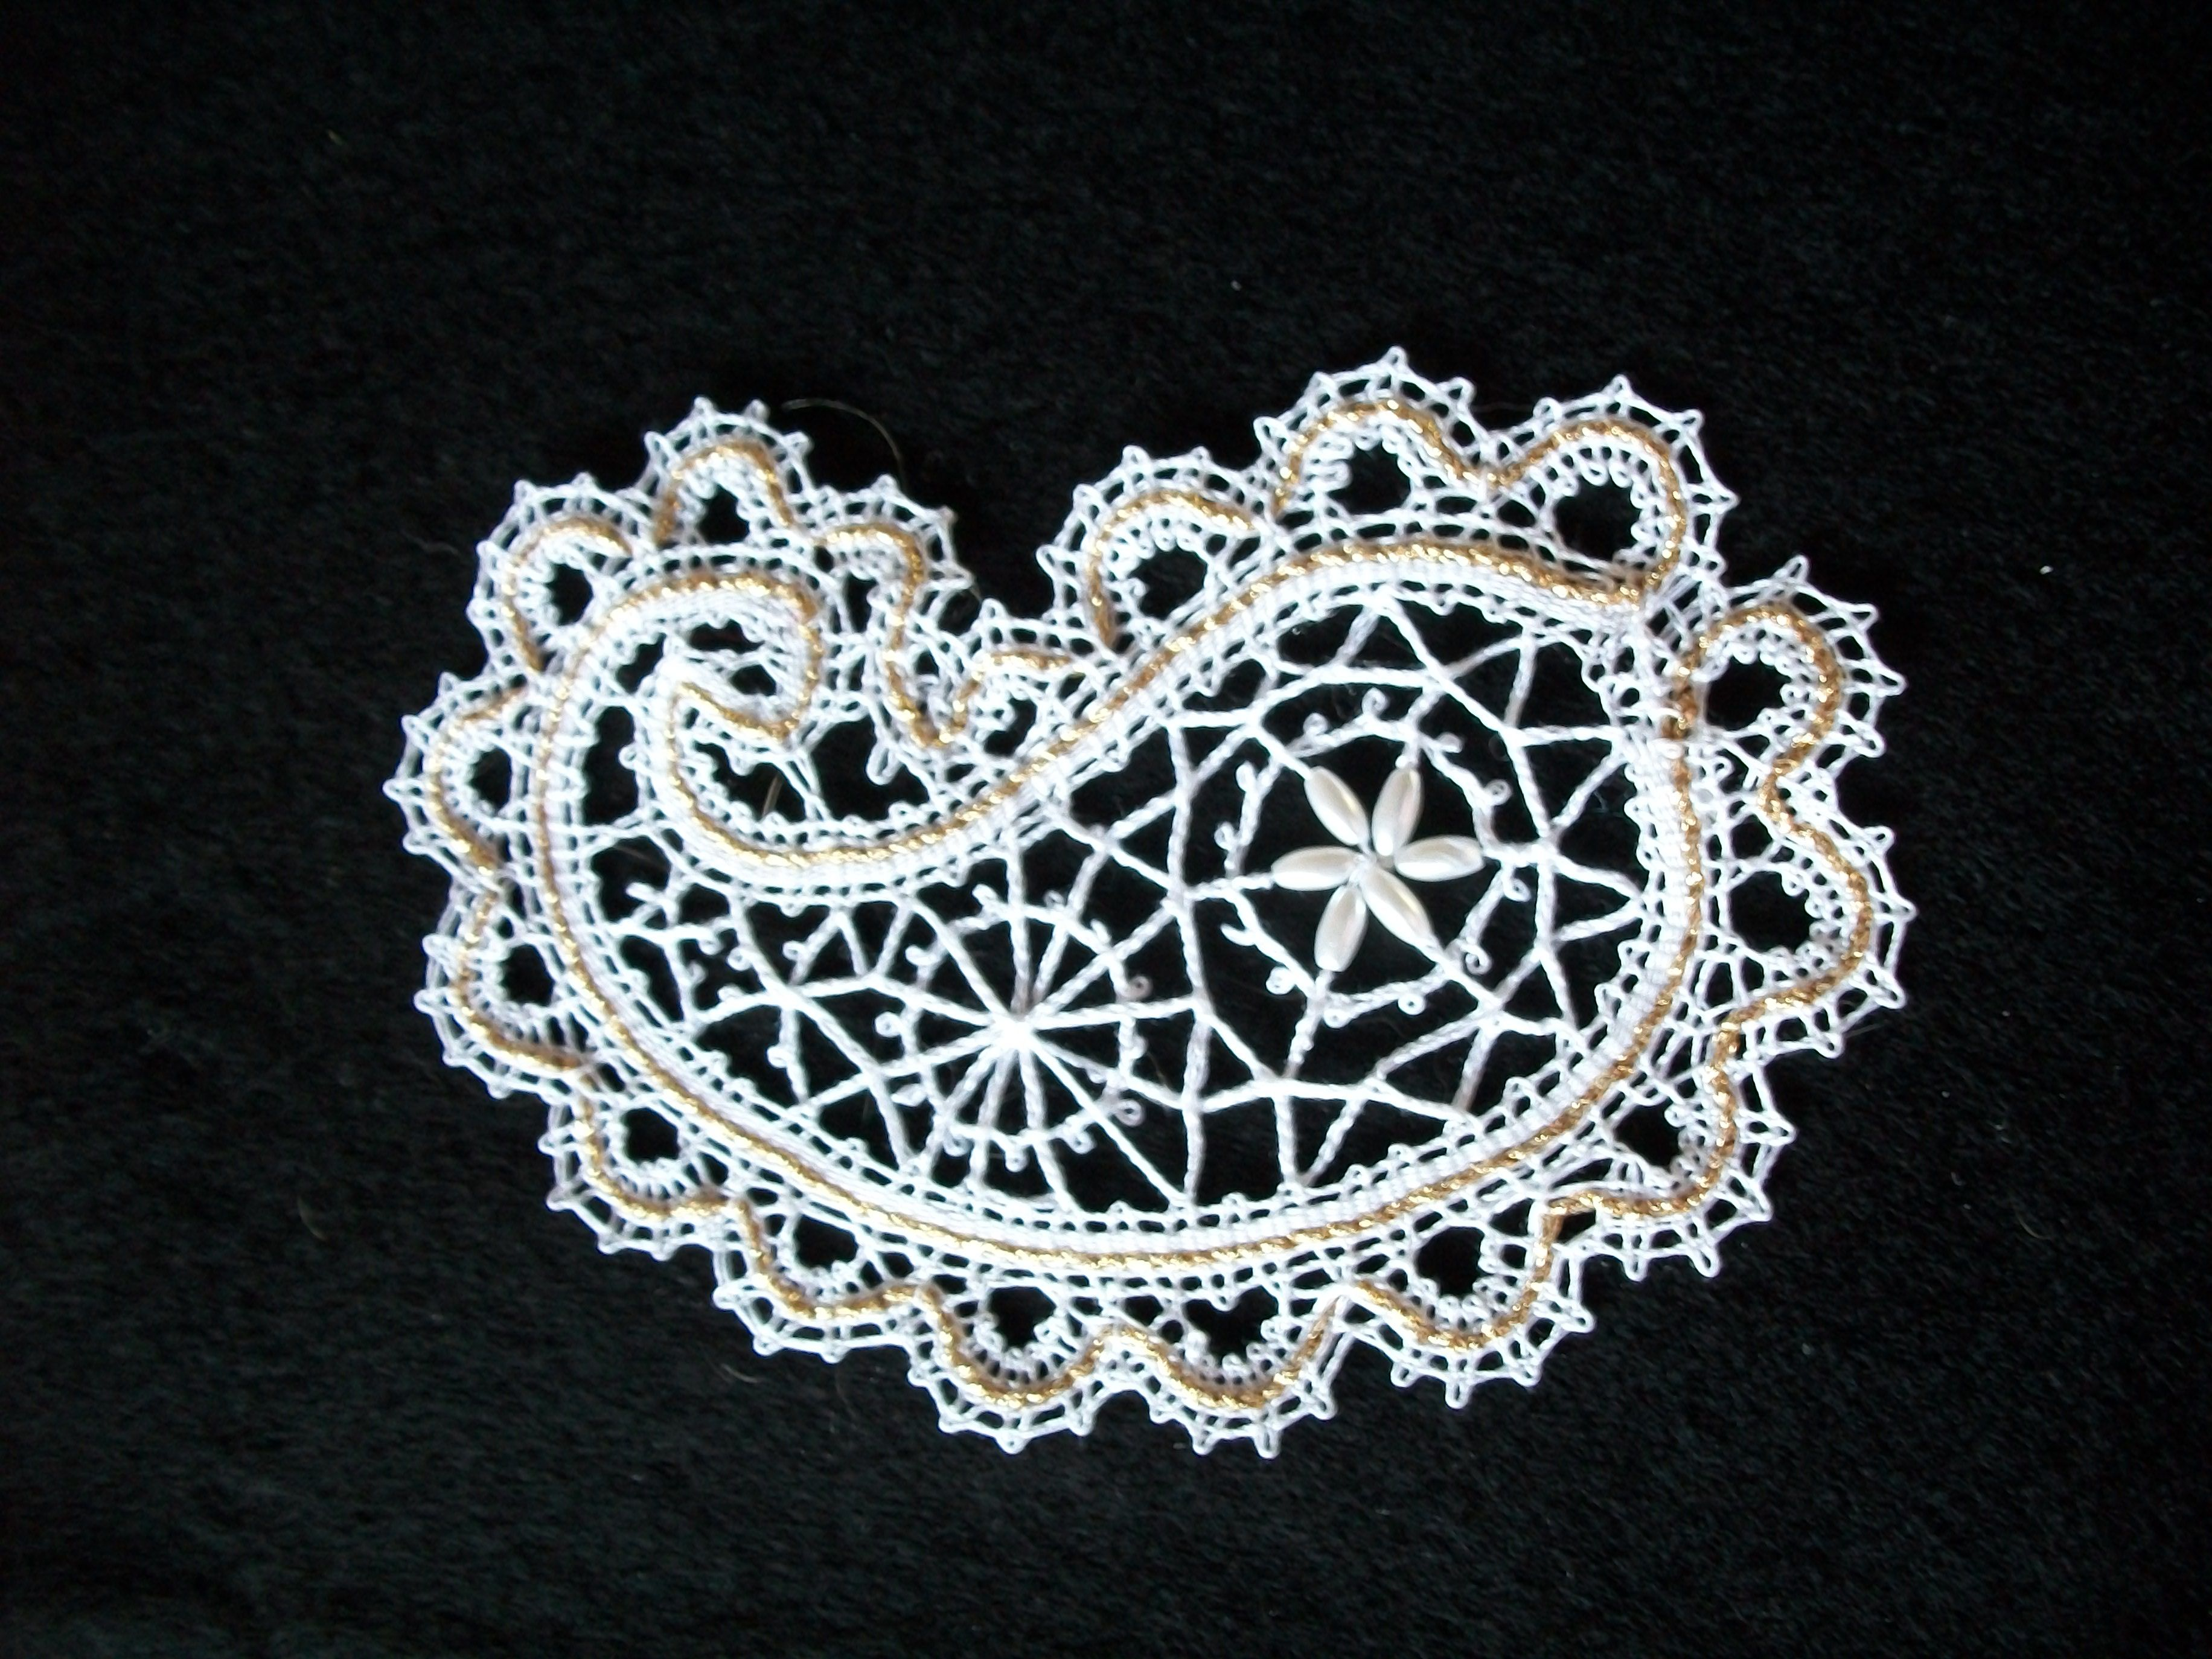 Russian paisley in bobbin lace lace pinterest bobbin lace russian paisley in bobbin lace bankloansurffo Images